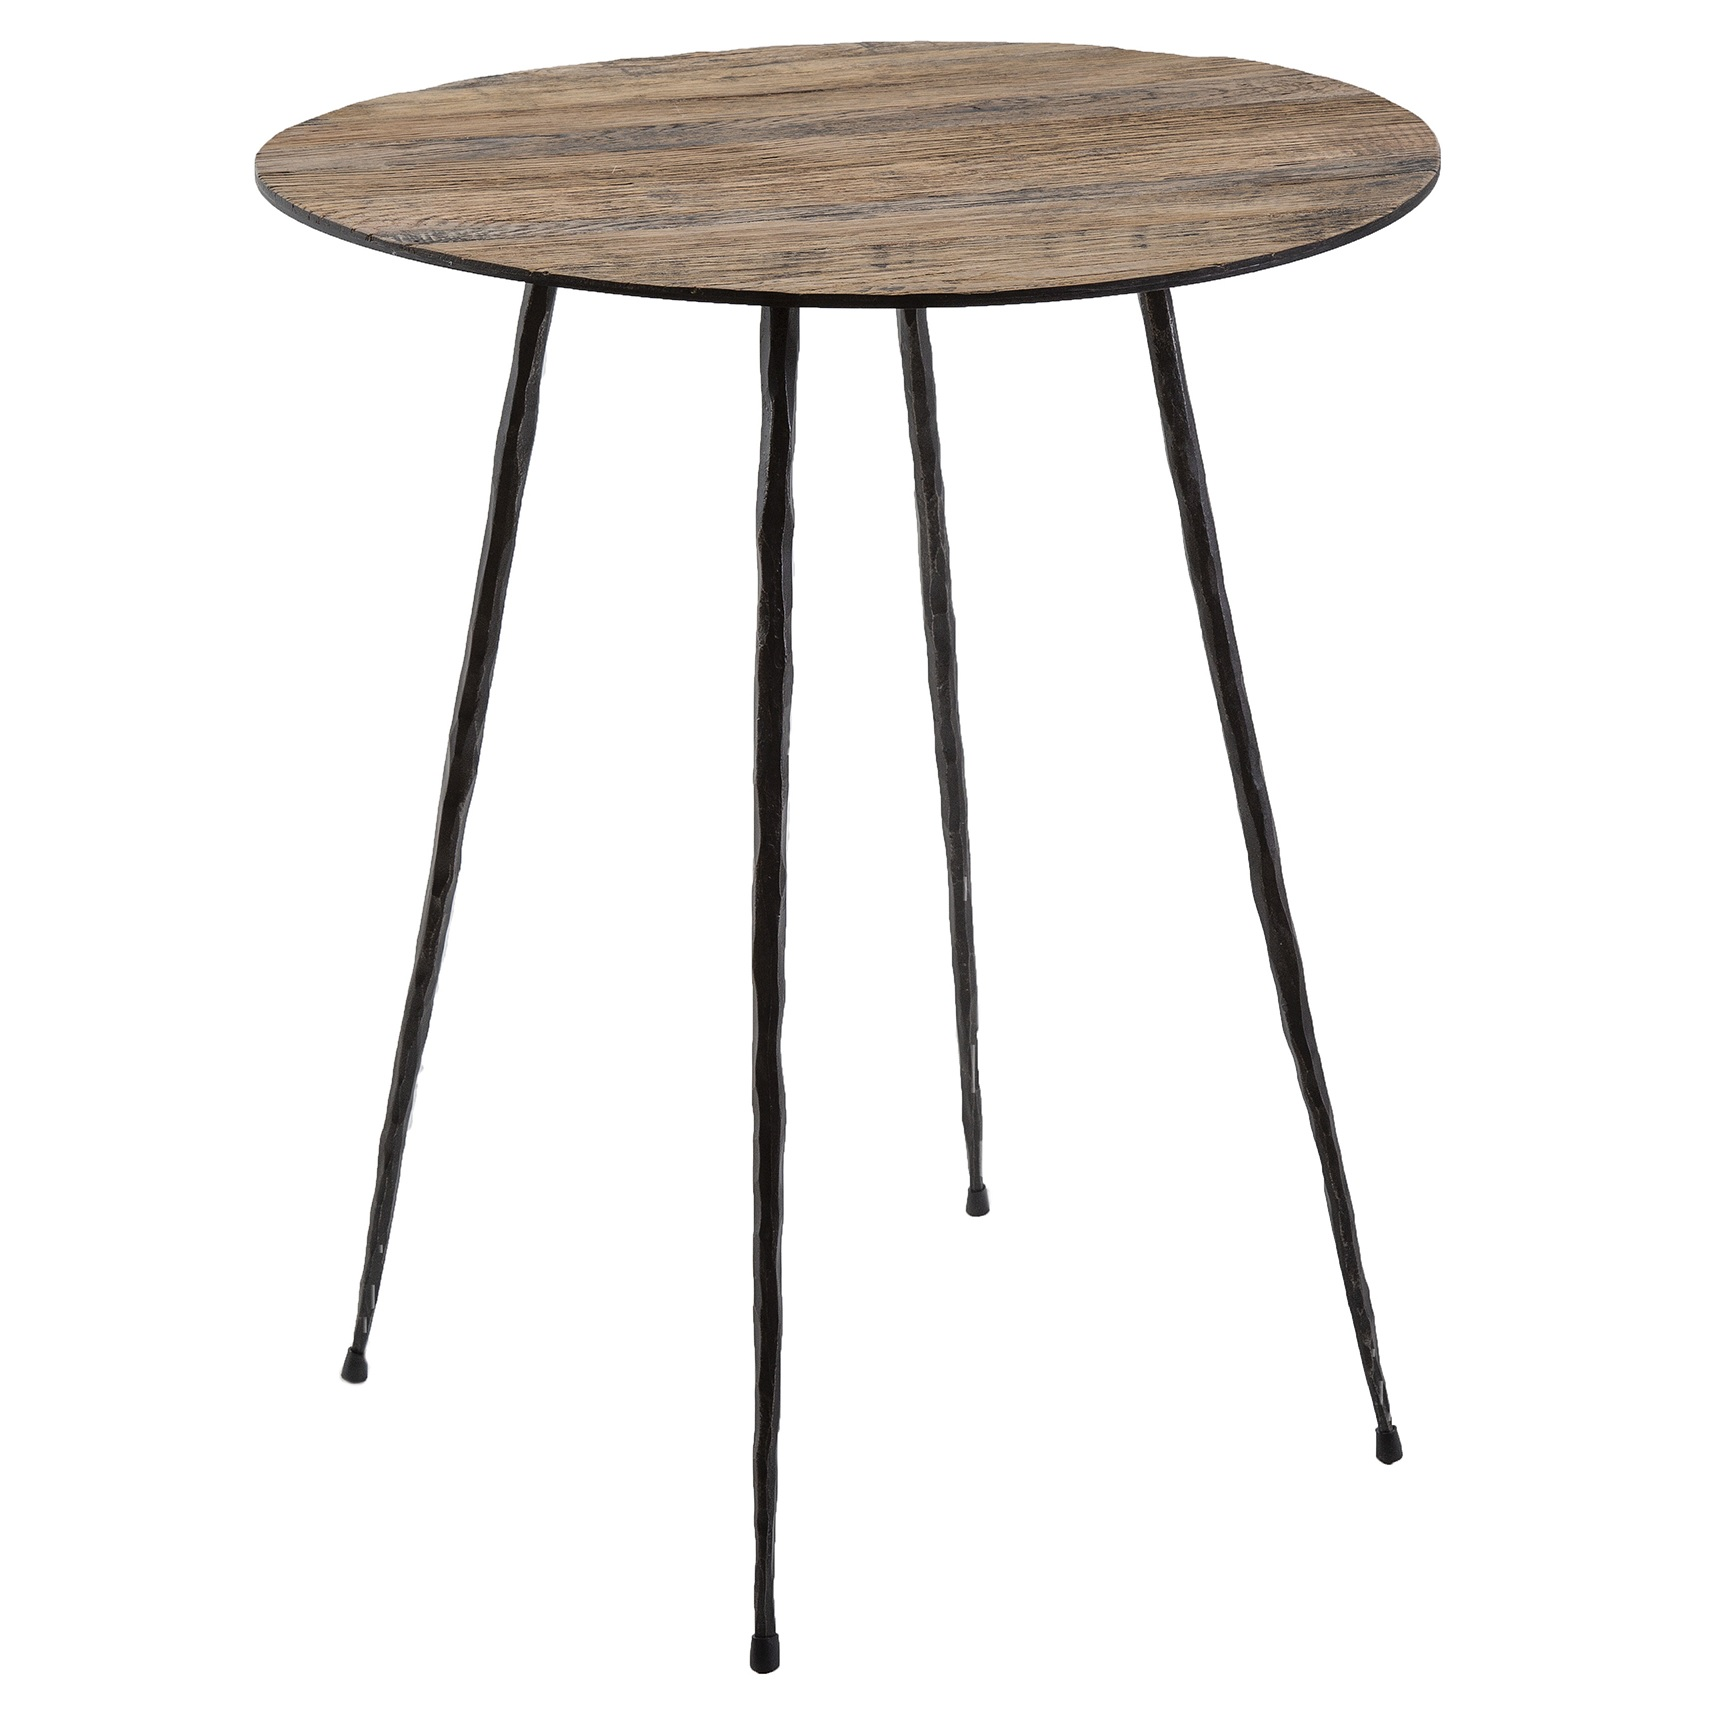 beatrice side table lam bespoke jules small accent room chairs outdoor pool furniture trestle style kitchen round lucite night stand light grey bedside cloths patio shade umbrella